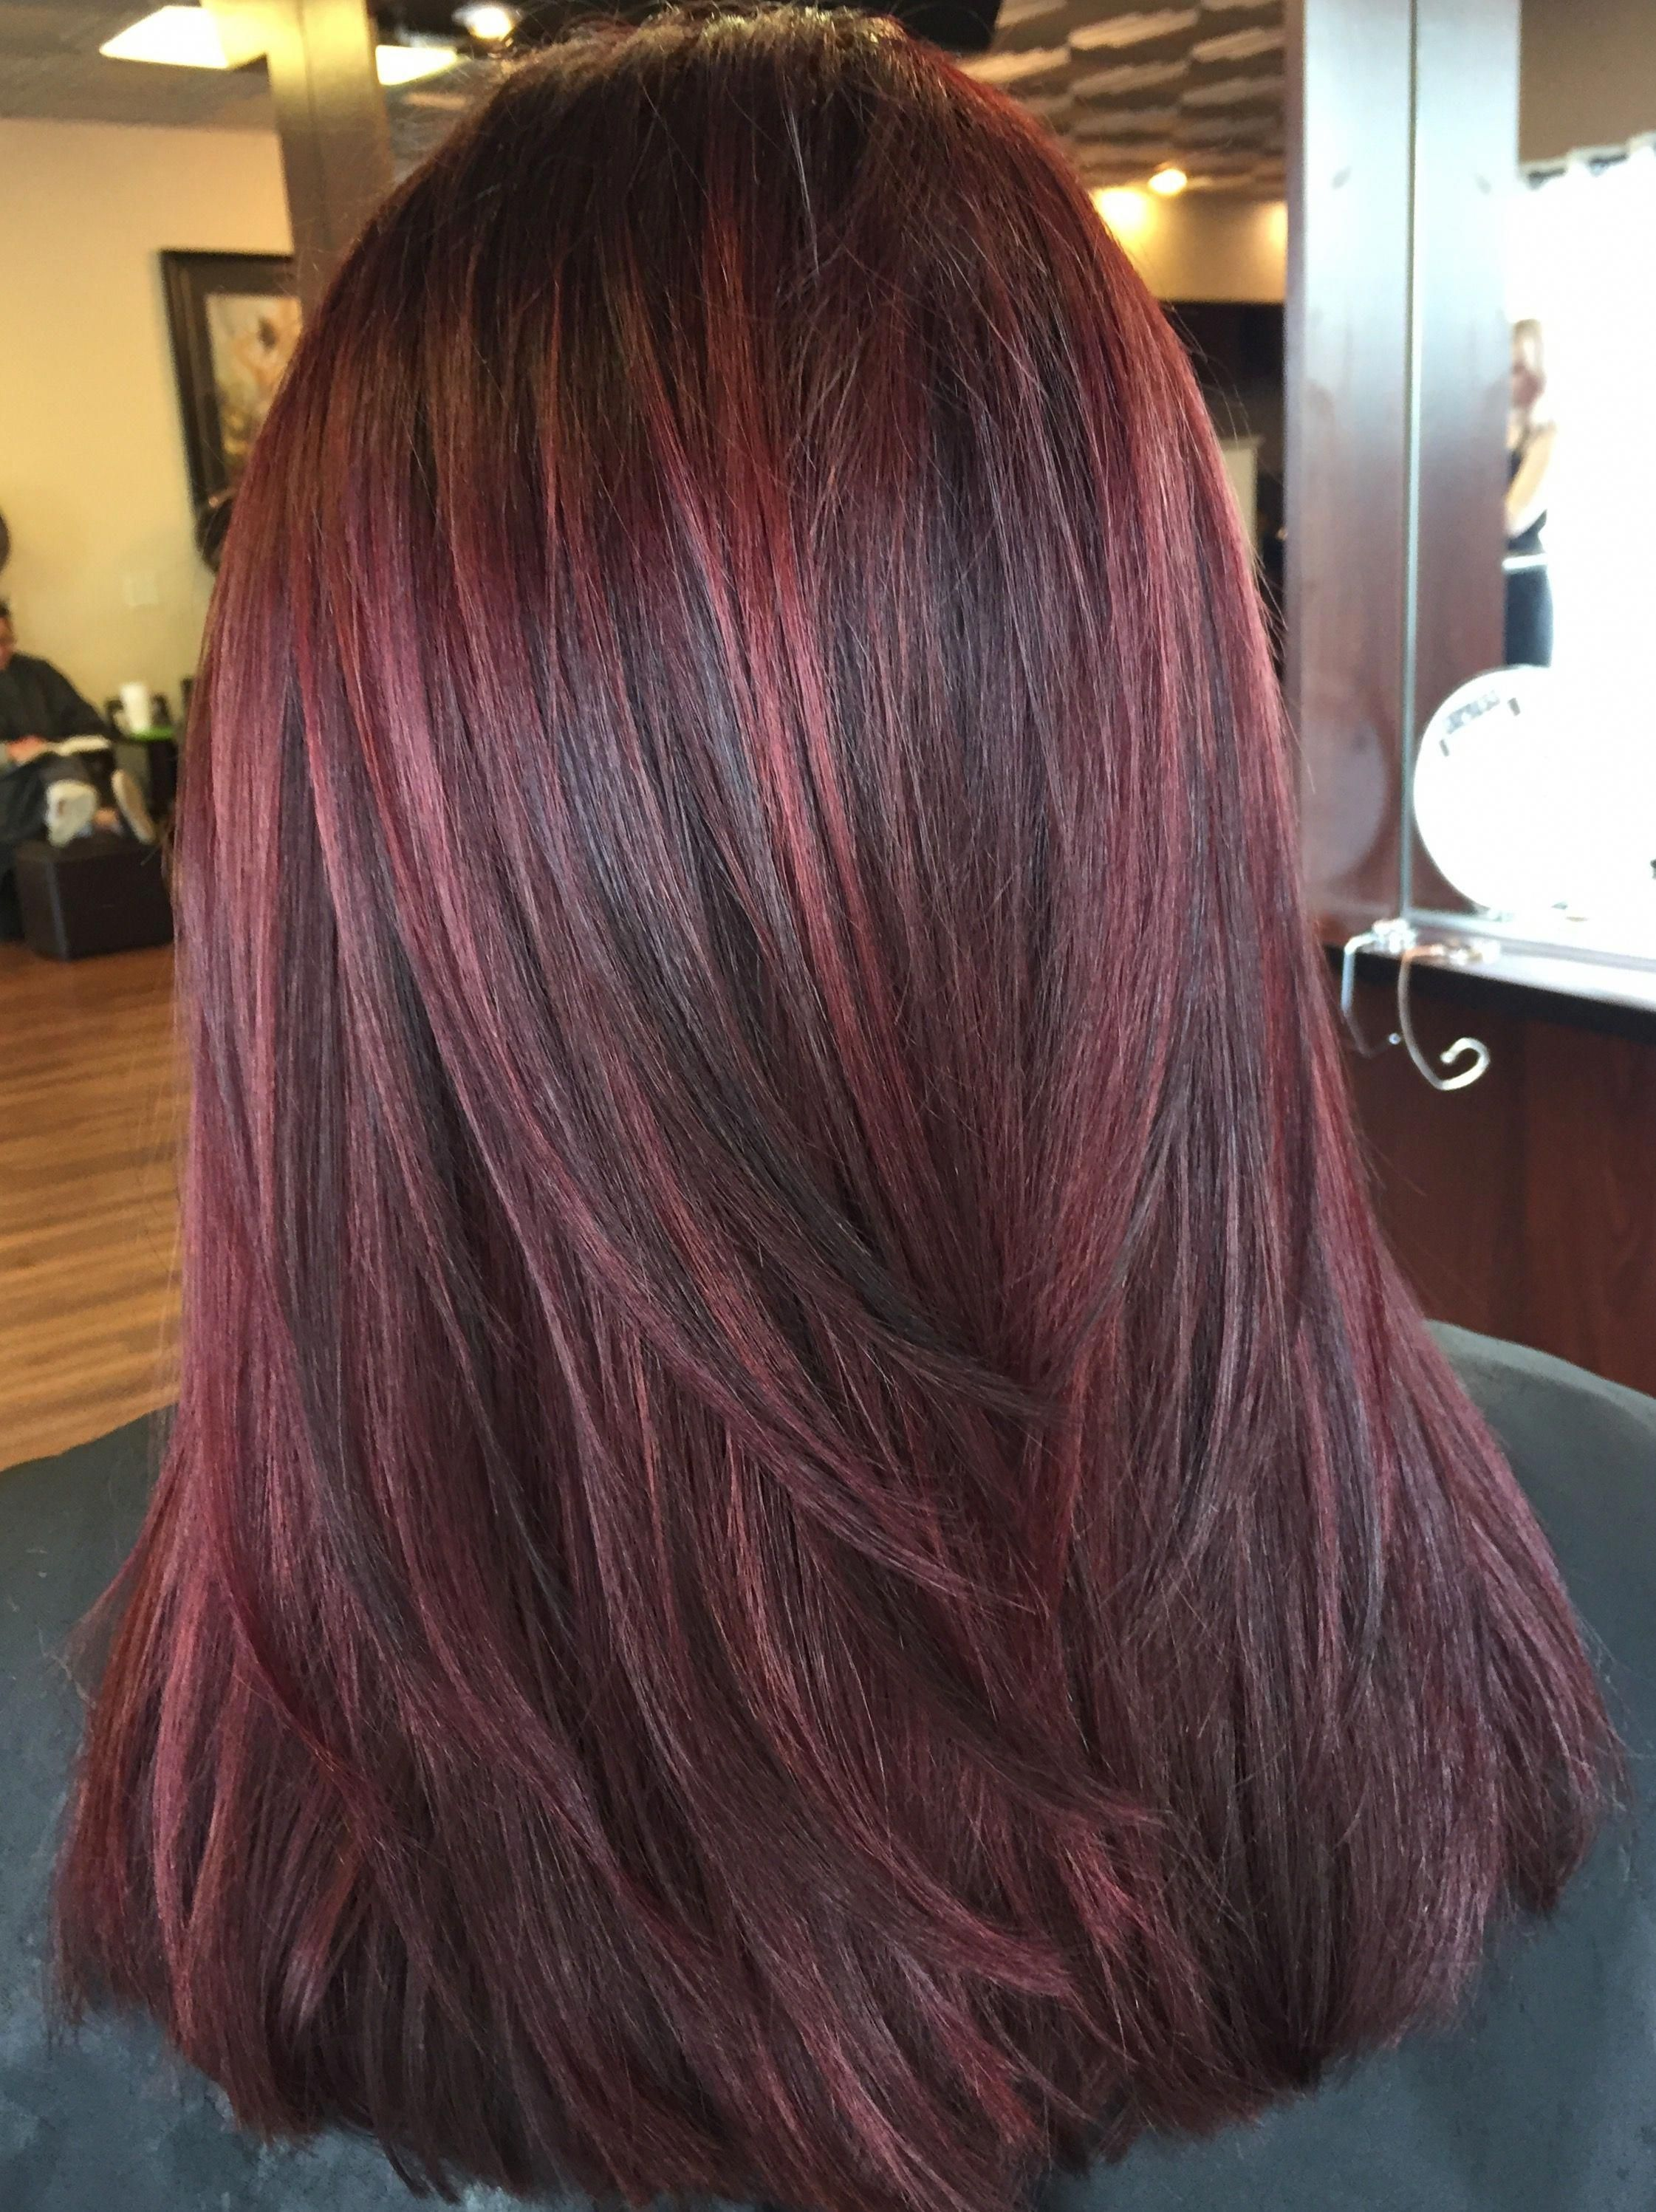 9 Bomb Burgundy Hair Ideas Because Deep Red Is The New Black Redhaircolor Red Highlights In Brown Hair Hair Color Burgundy Brunette Hair Color